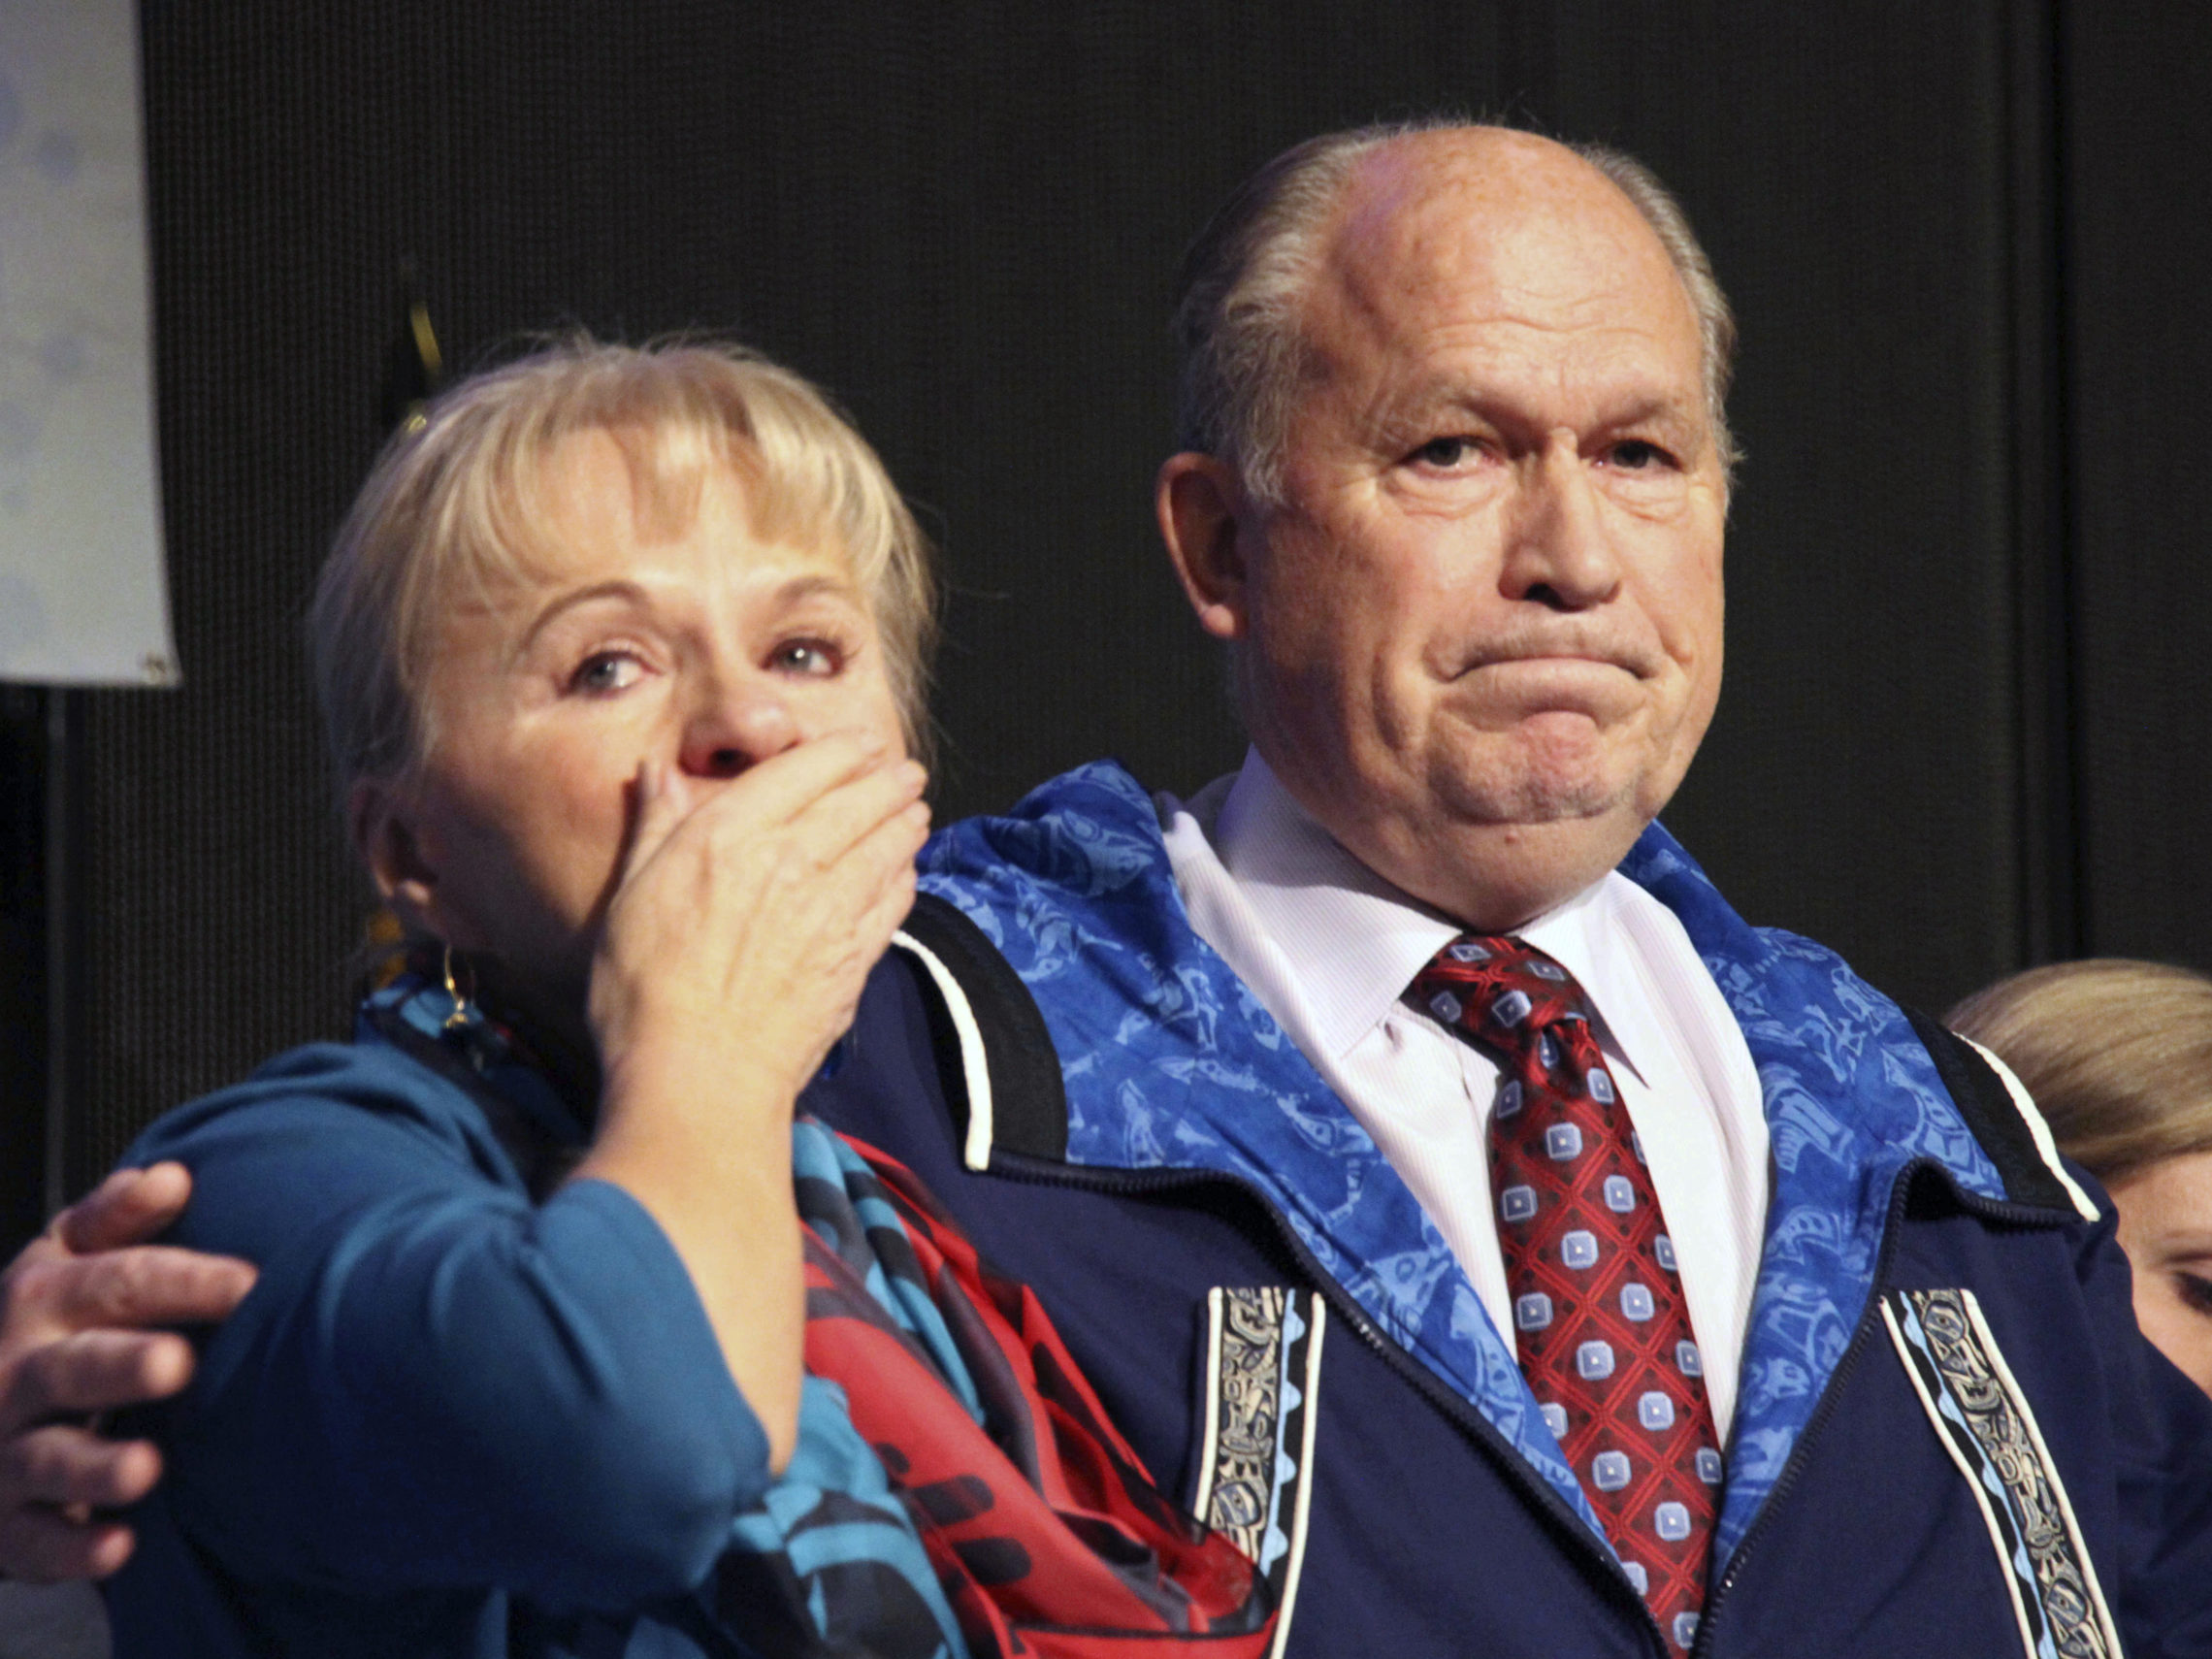 Donna Walker blows kisses to the crowd as her husband, Gov. Bill Walker, announced he was suspending his re-election bid and supporting Democrat Mark Begich. He has been far behind in the polls, and his lieutenant governor resigned for an